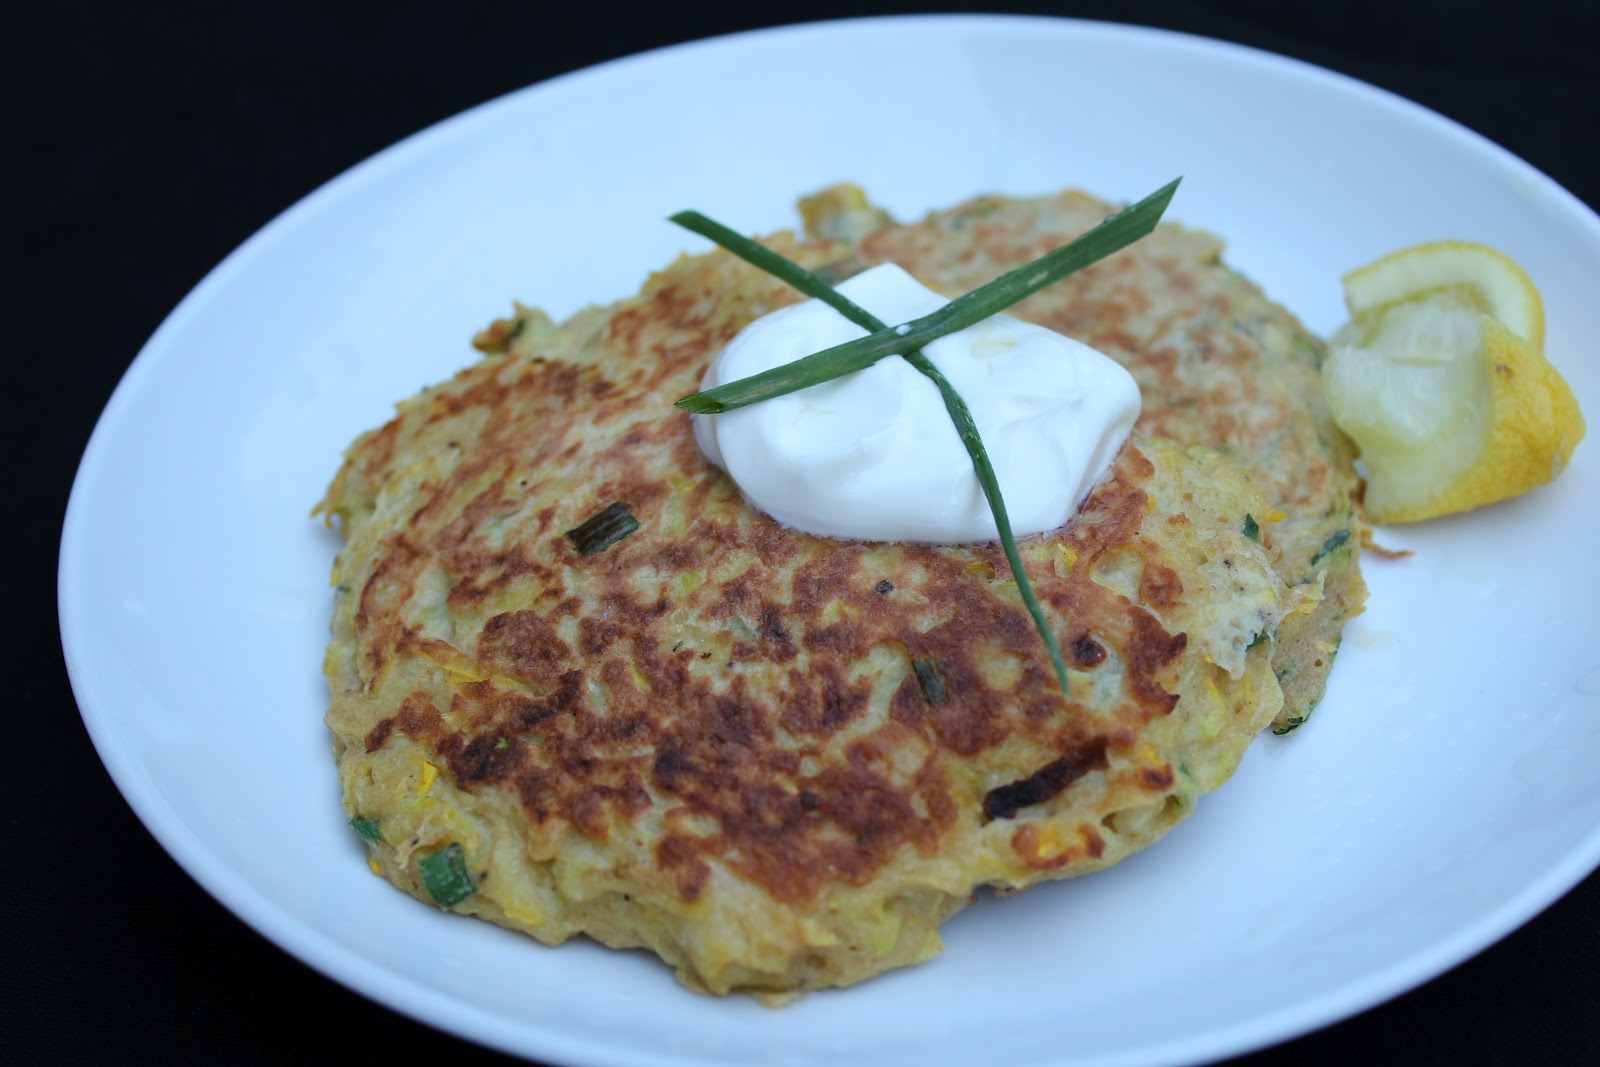 ... summer squash pancakes or bread muffins cookies etc summer squash is